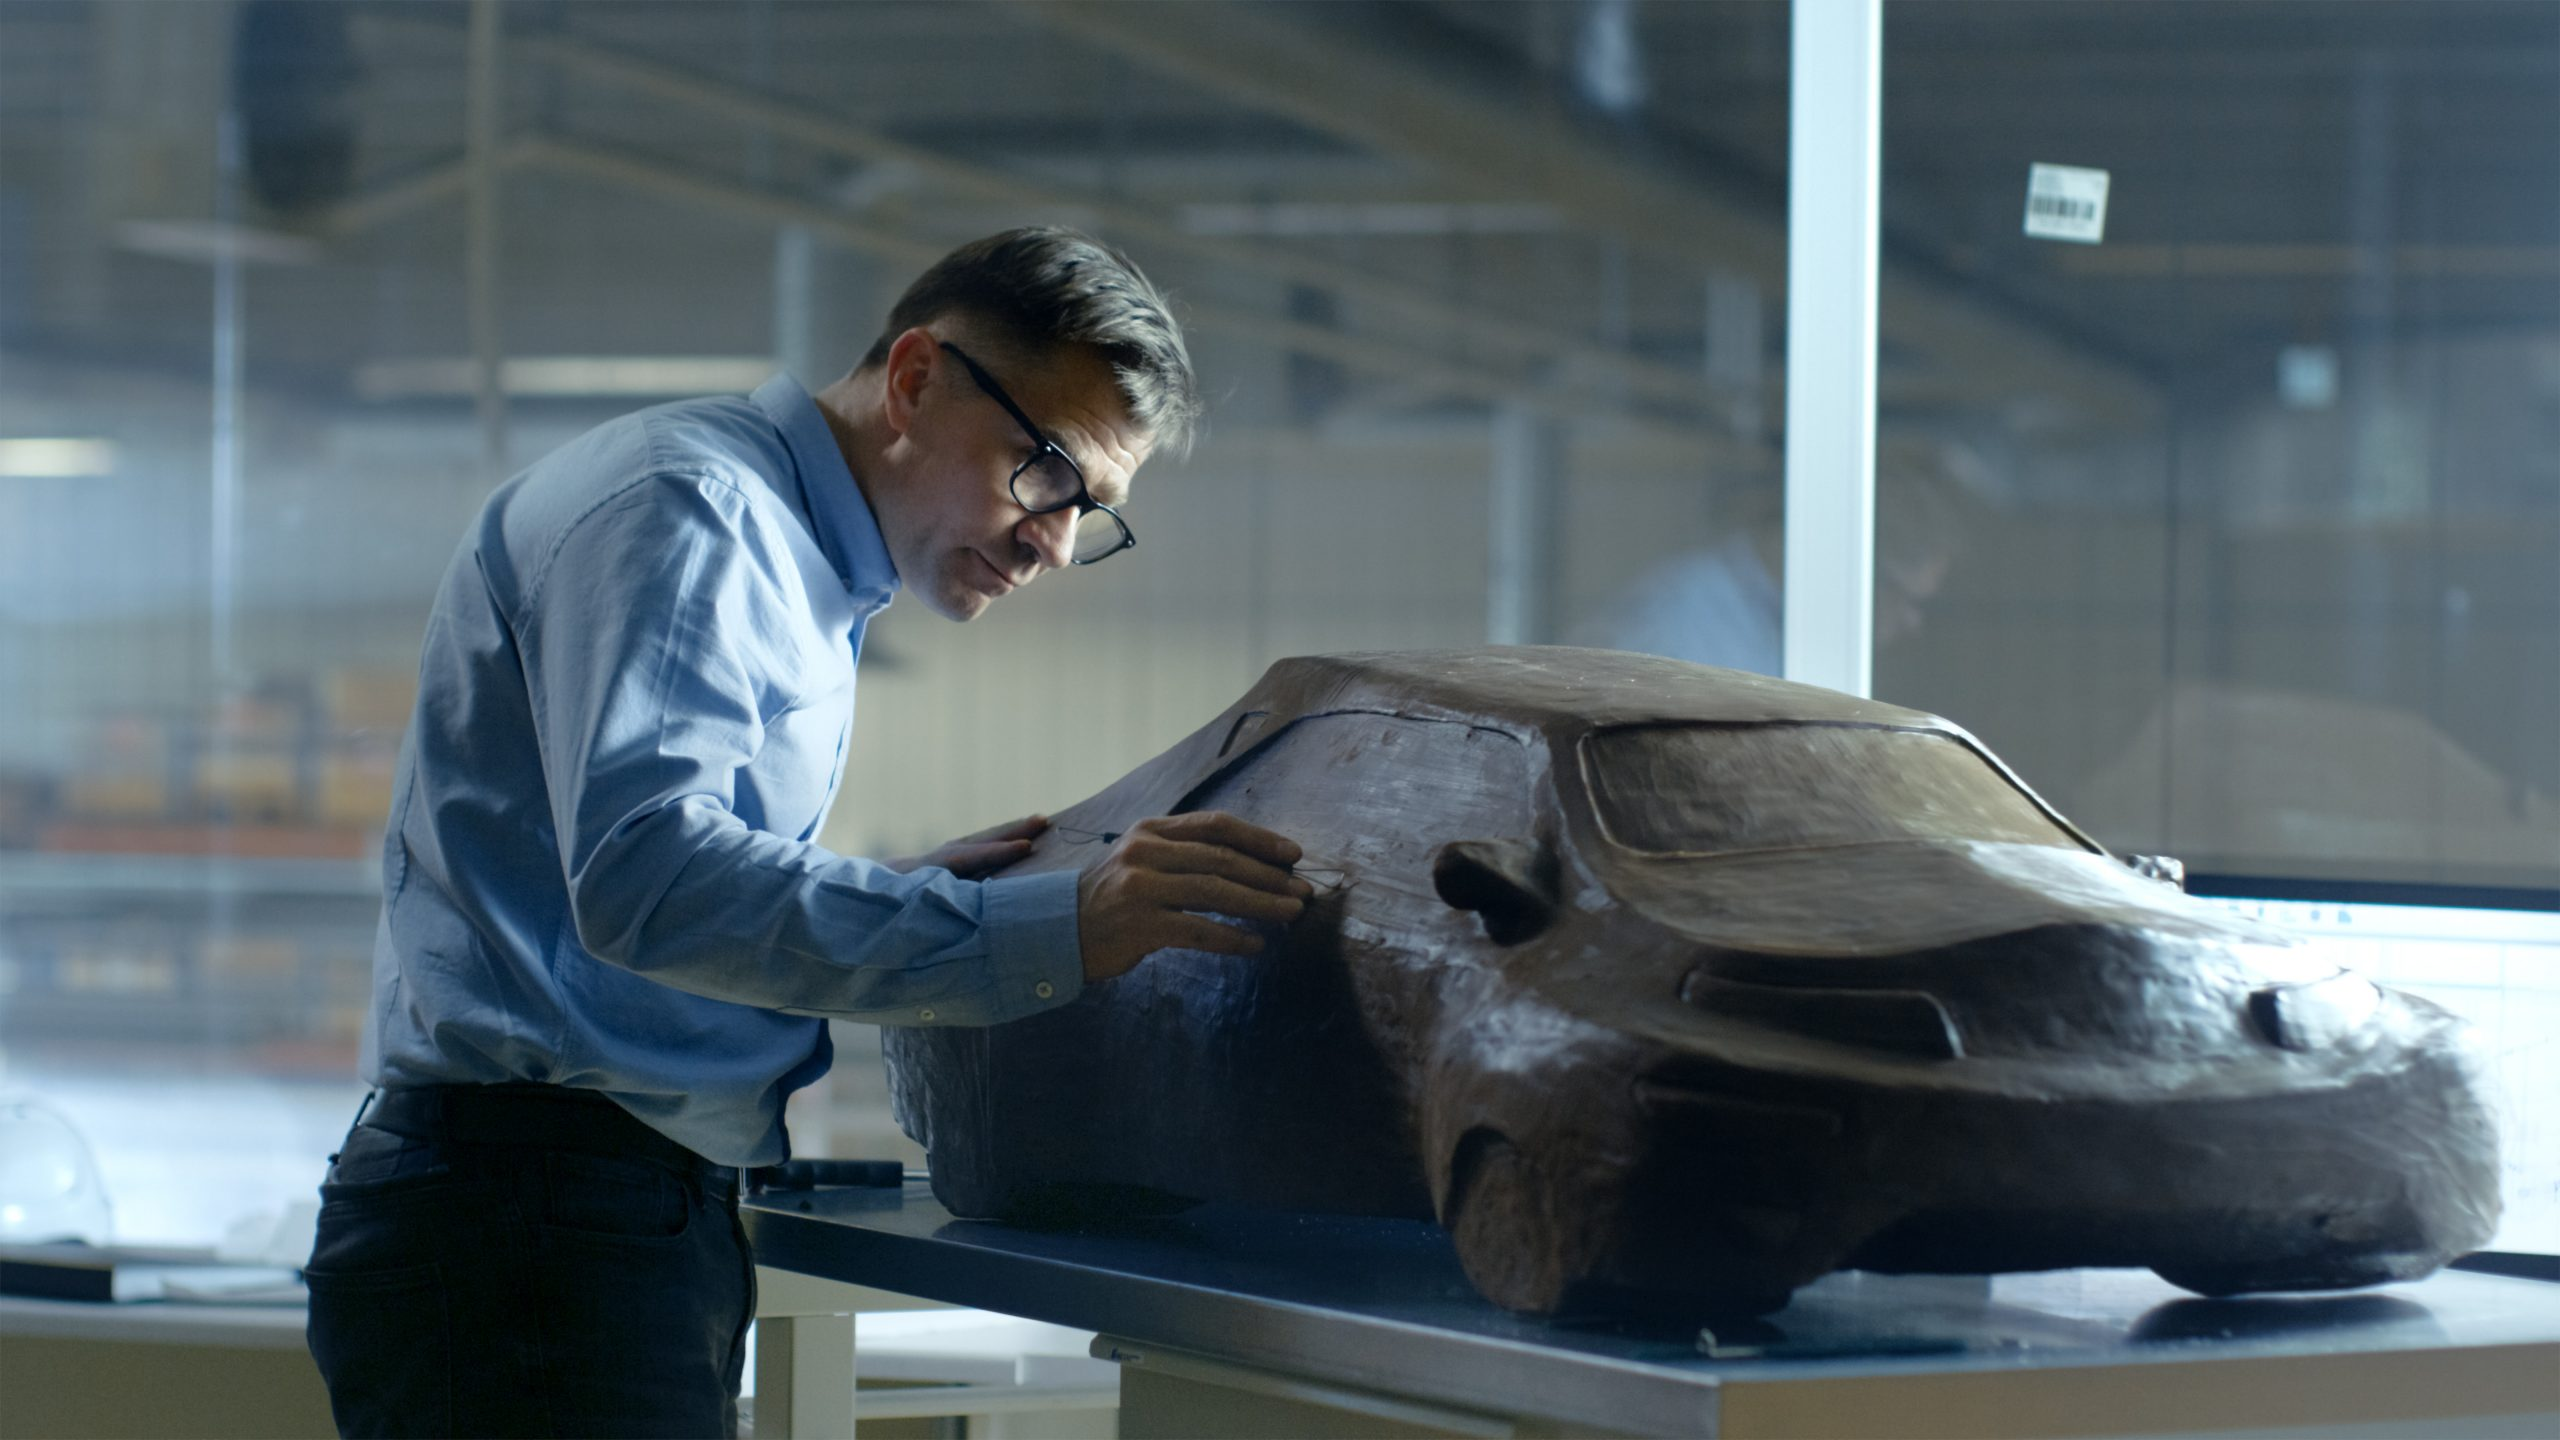 Chef-Automotive-Designer with Rake Skulptures Futuristic Car Model from Plasticine Clay